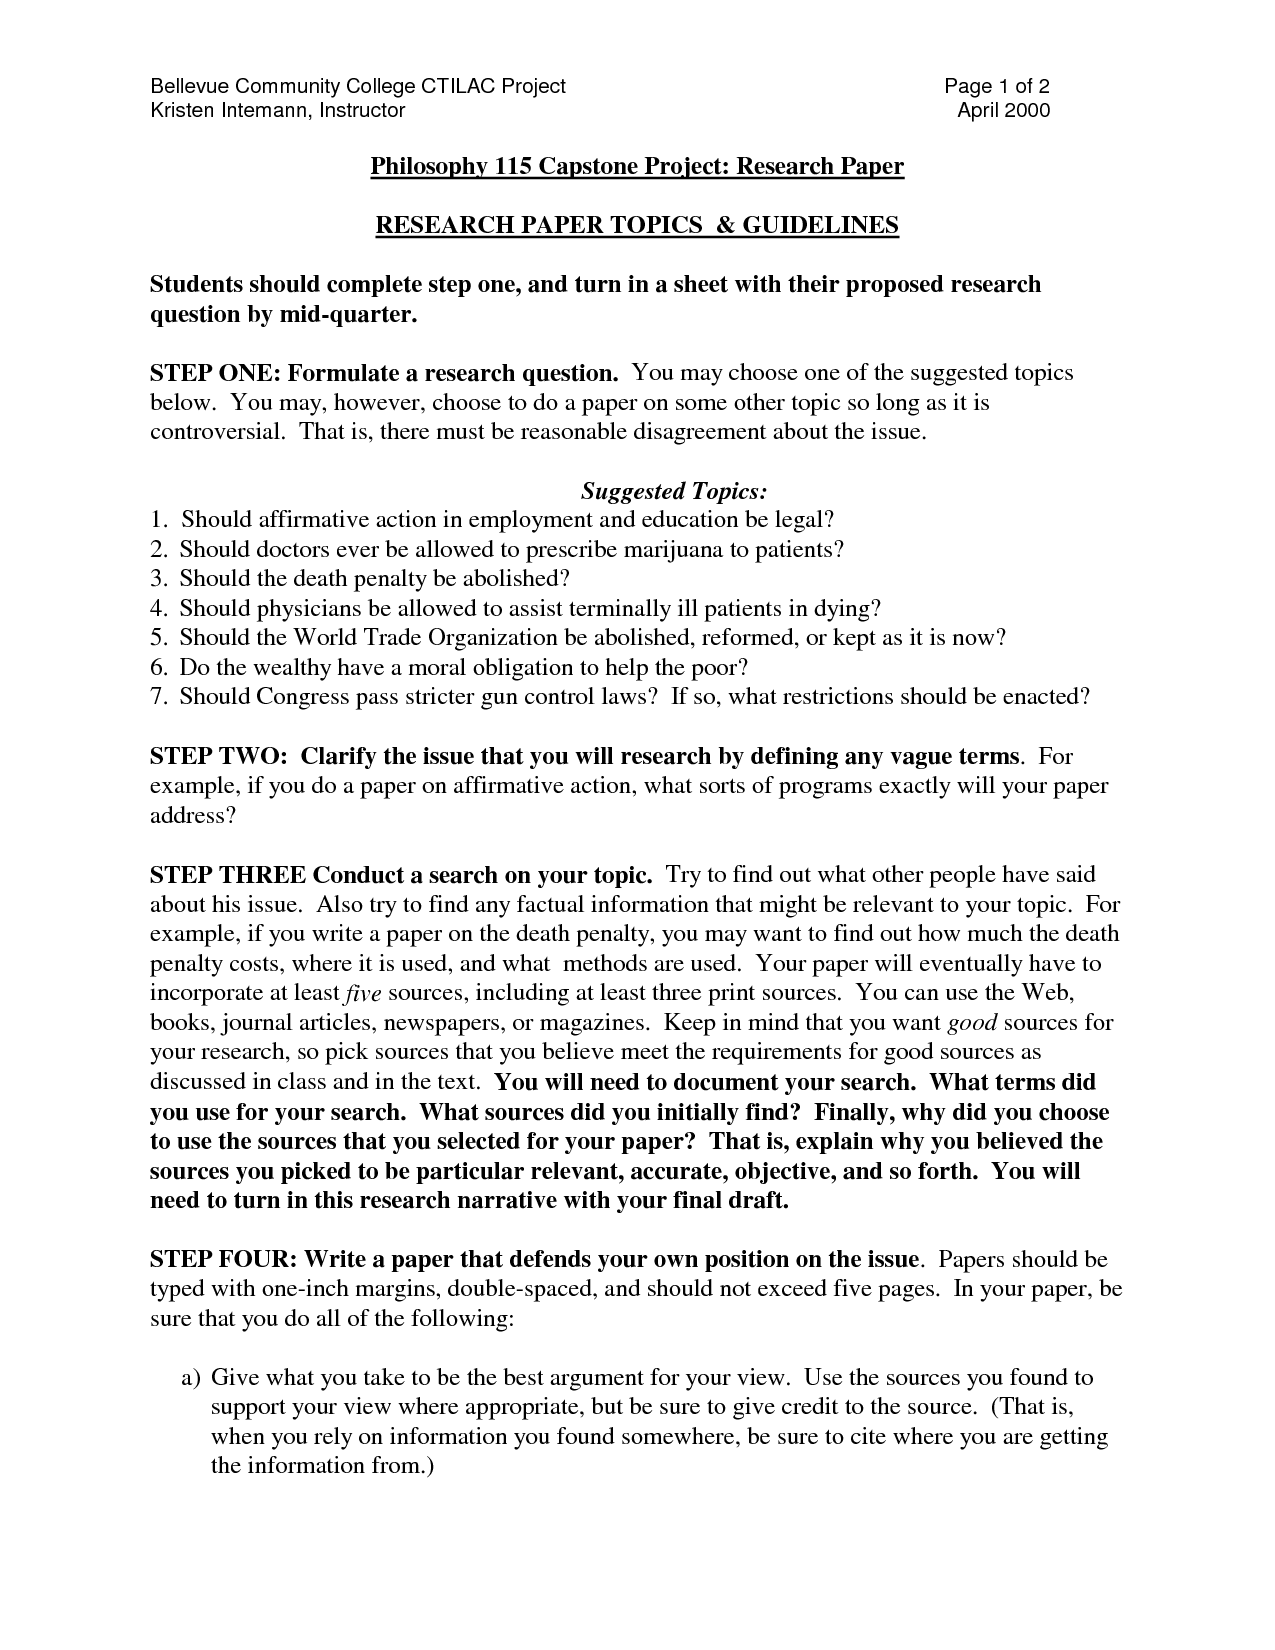 006 Buy Research Paper For College Remarkable A Cheap Full